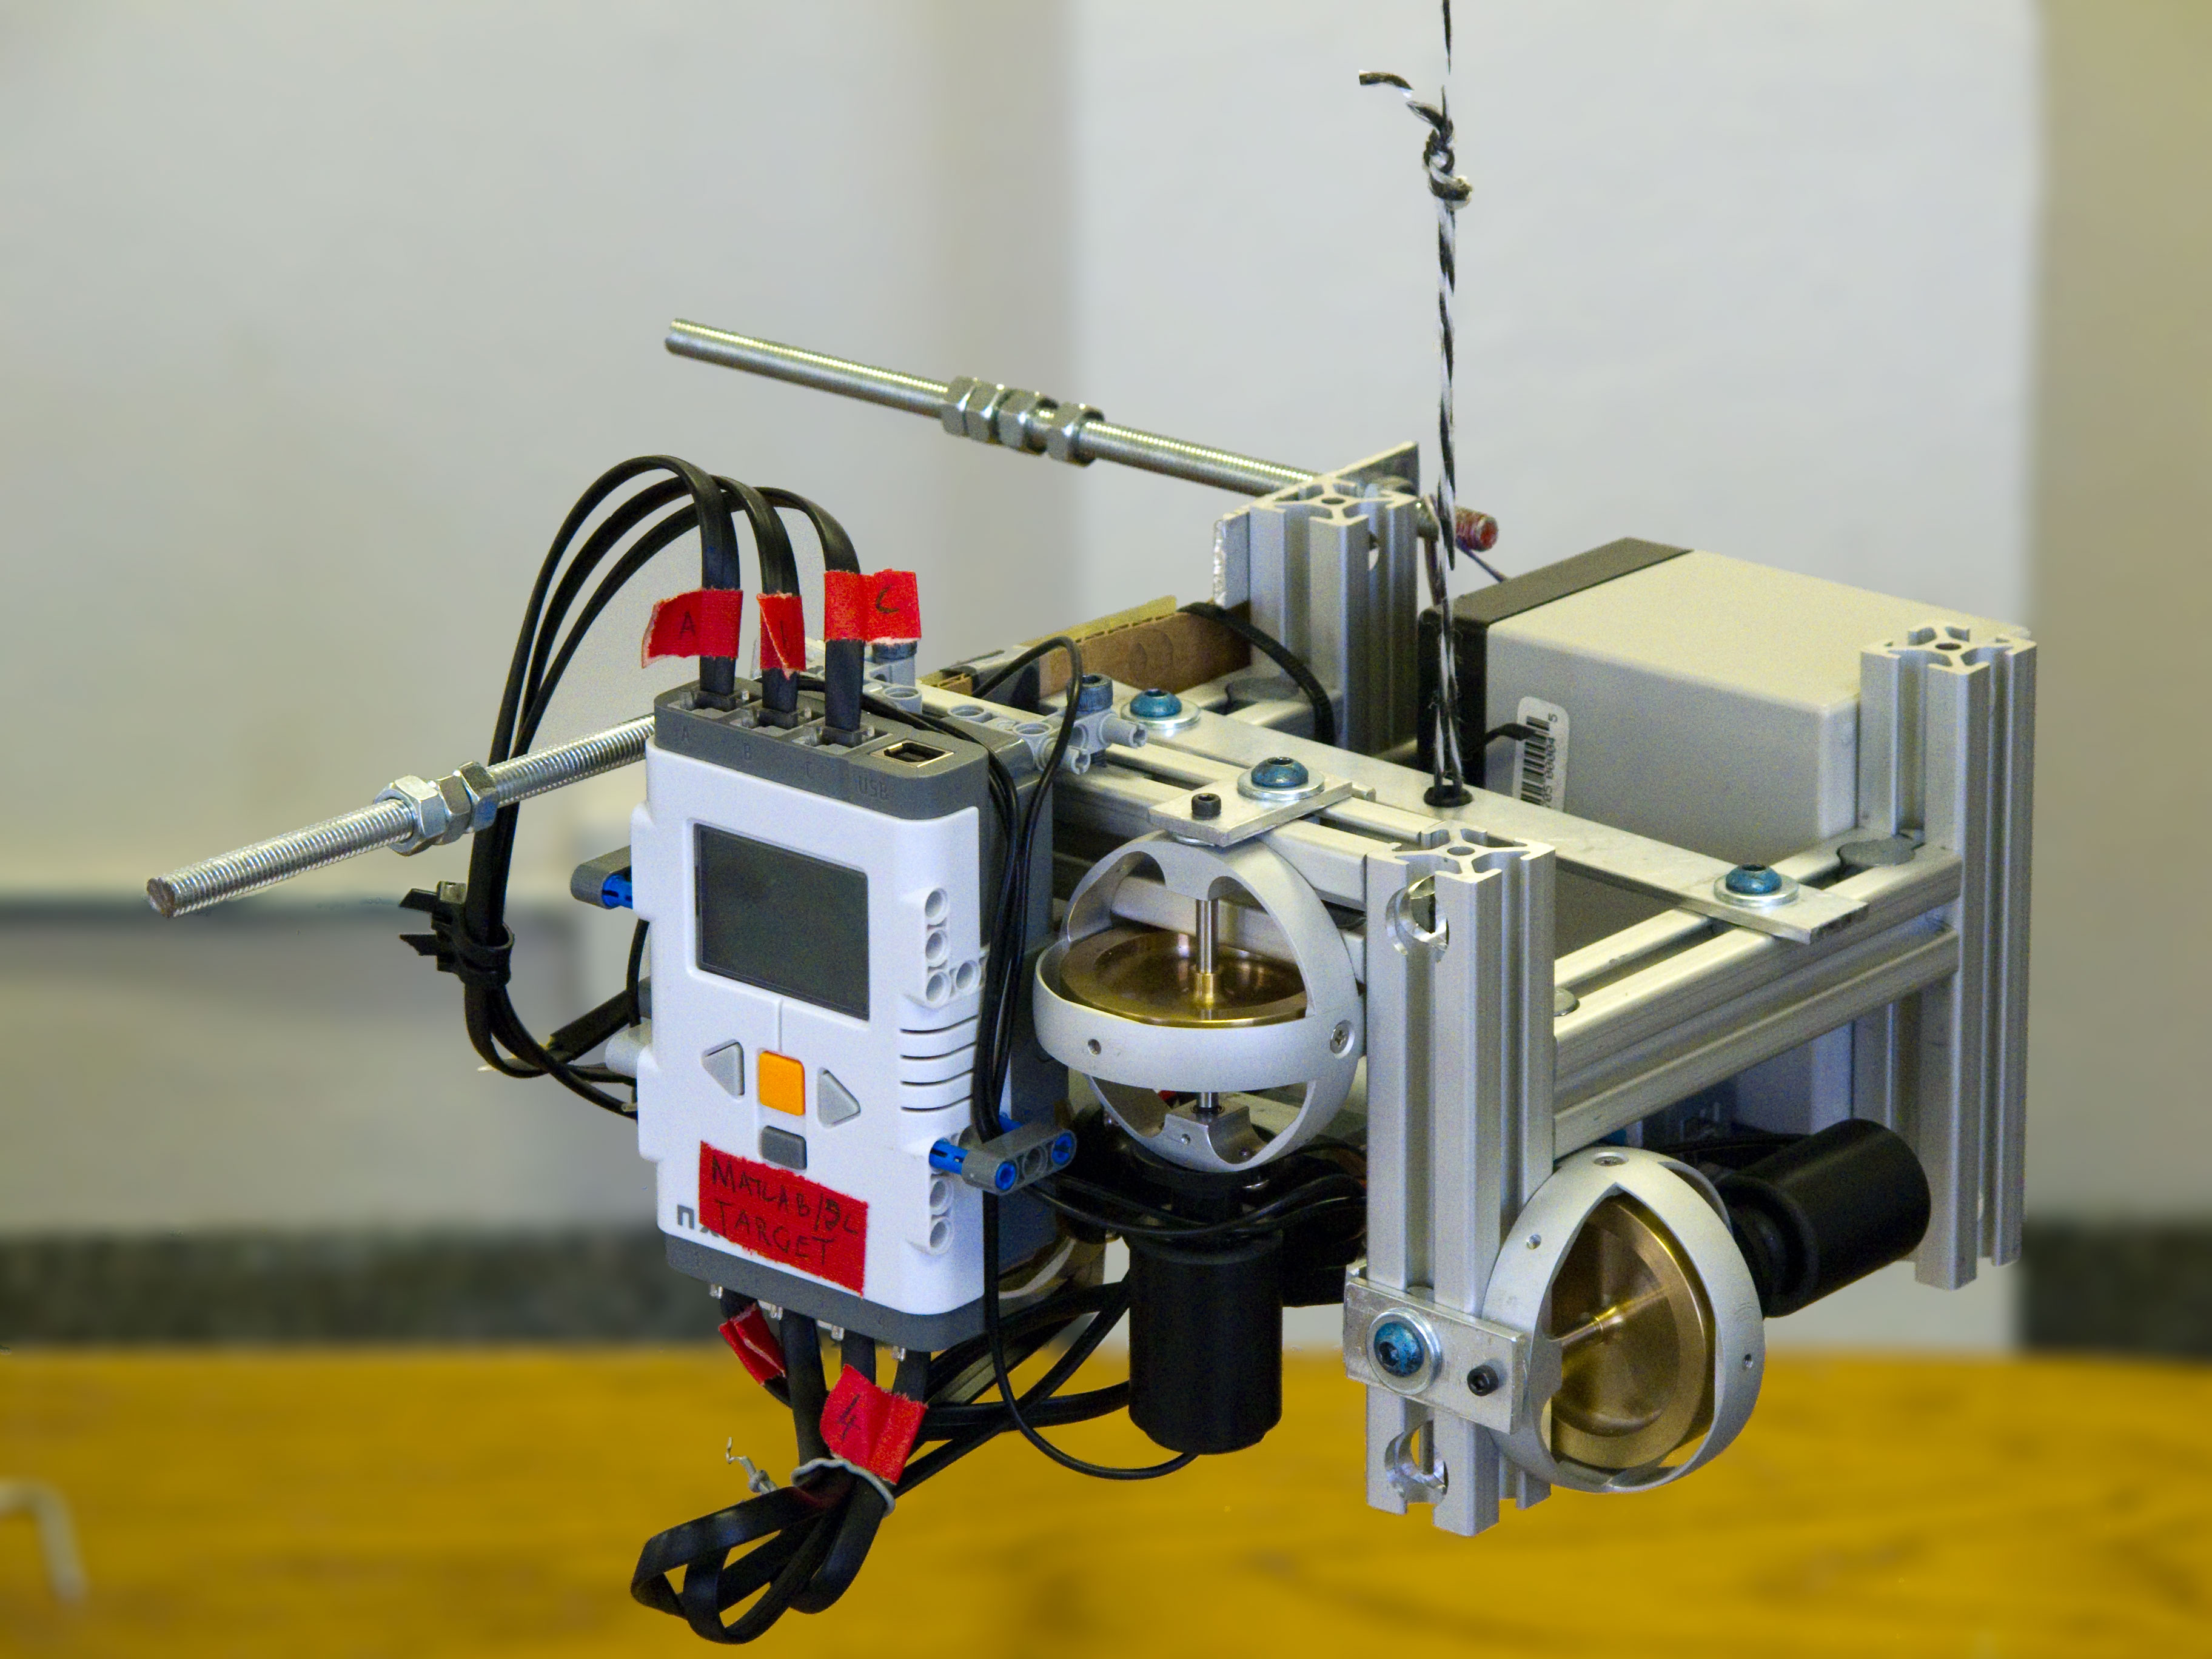 A fully functioning satellite prototype built from Lego Mindstorms NXT.